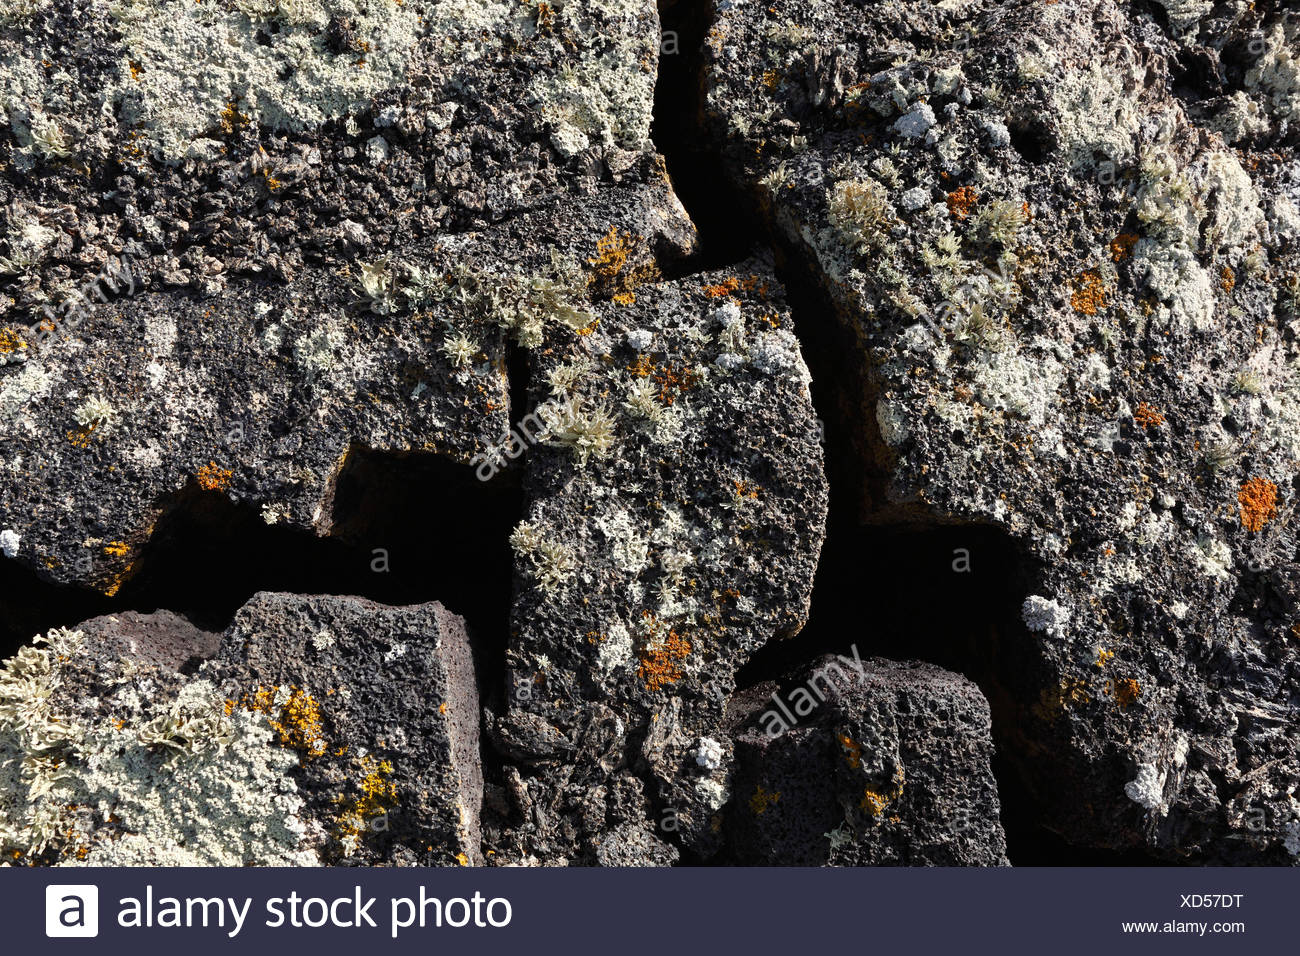 Cracks in a lava field with lichens, Lanzarote, Canary Islands, Spain, Europe - Stock Image